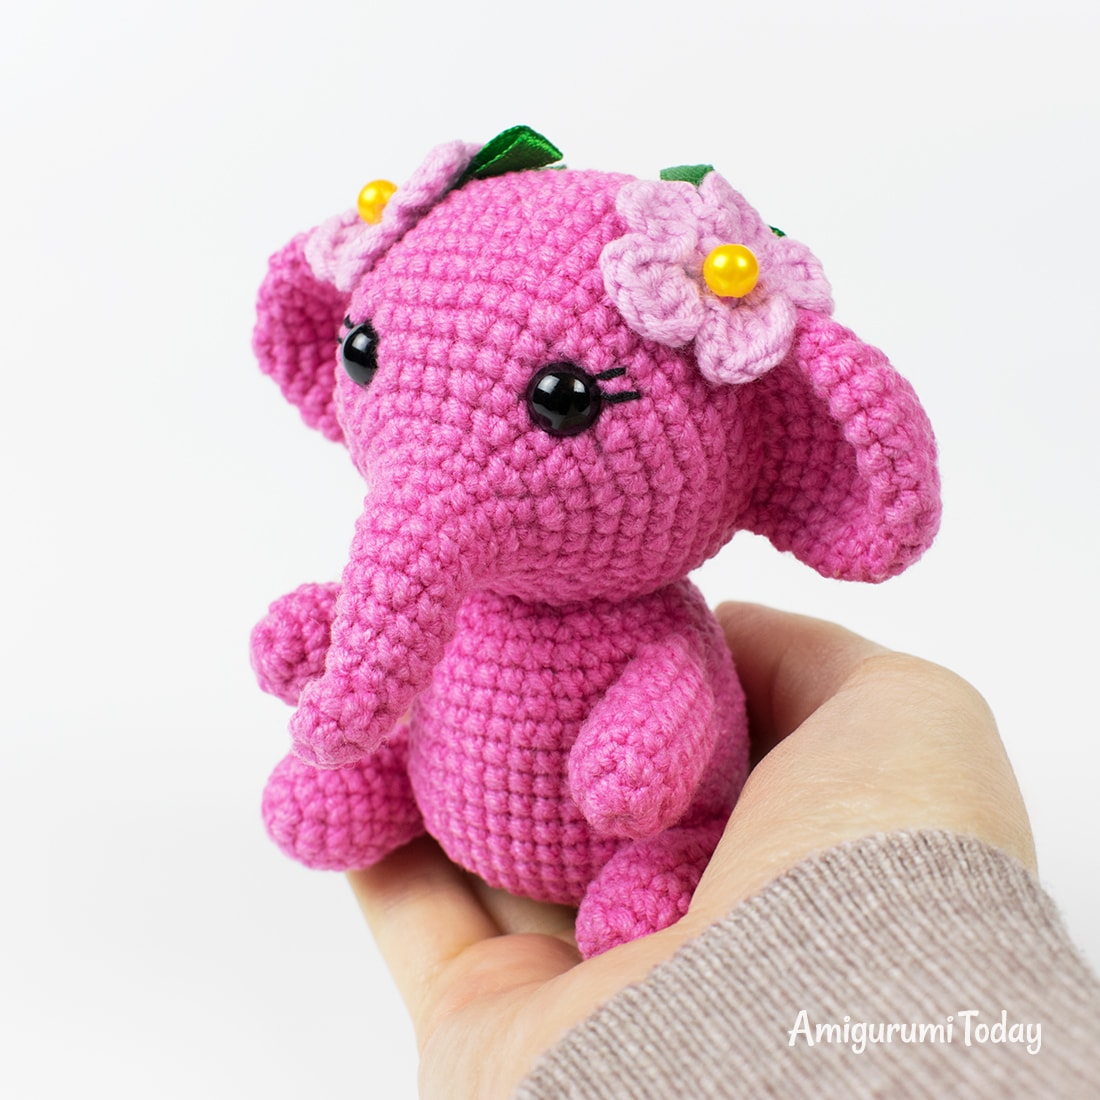 hight resolution of pink elephant crochet pattern by amigurumi today